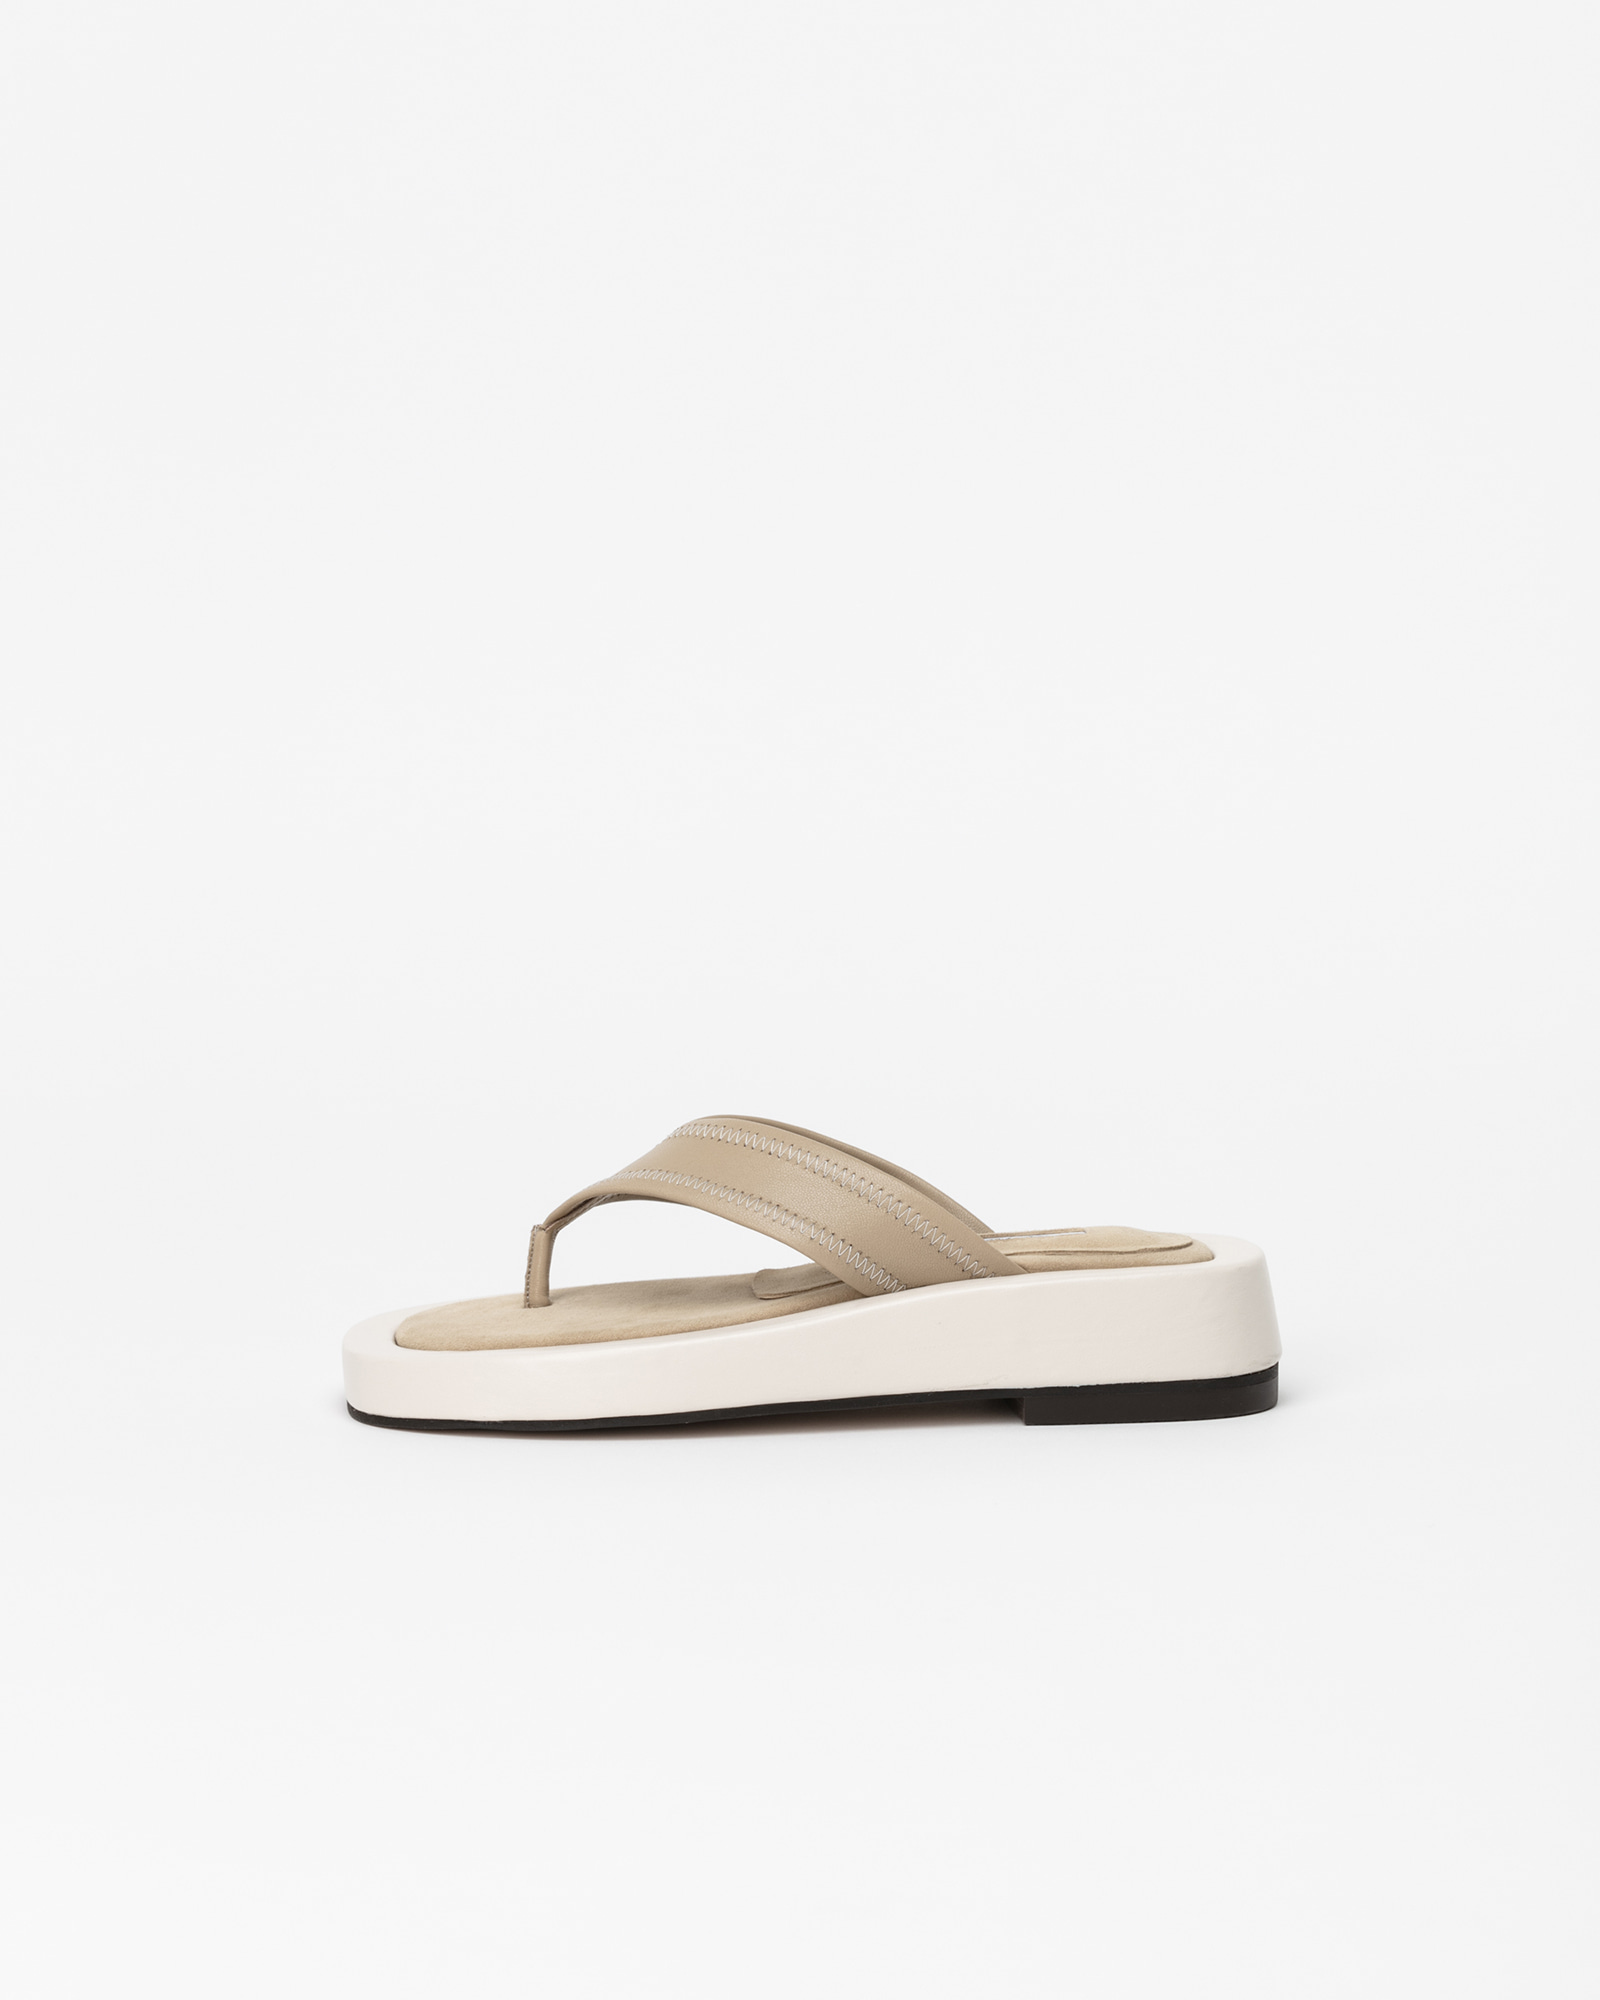 Alpensia Footbed Thong Slides in Ivory and Beige